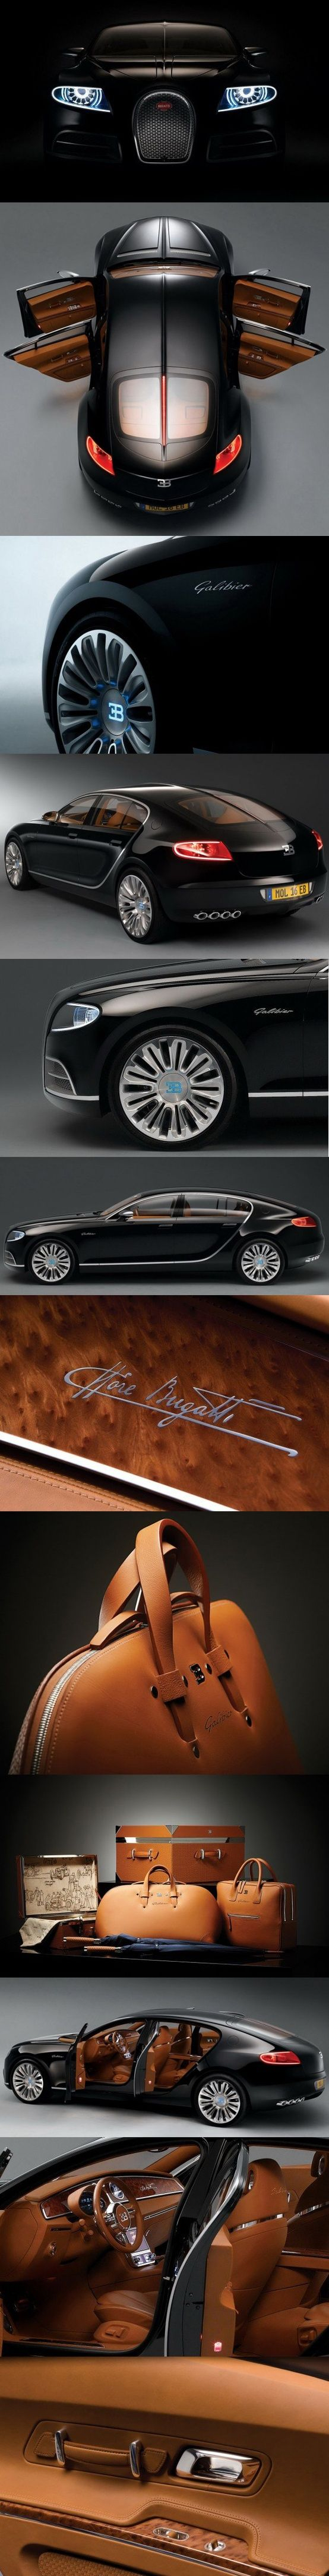 I l♥ve this car!! BUGATTI GALIBIER